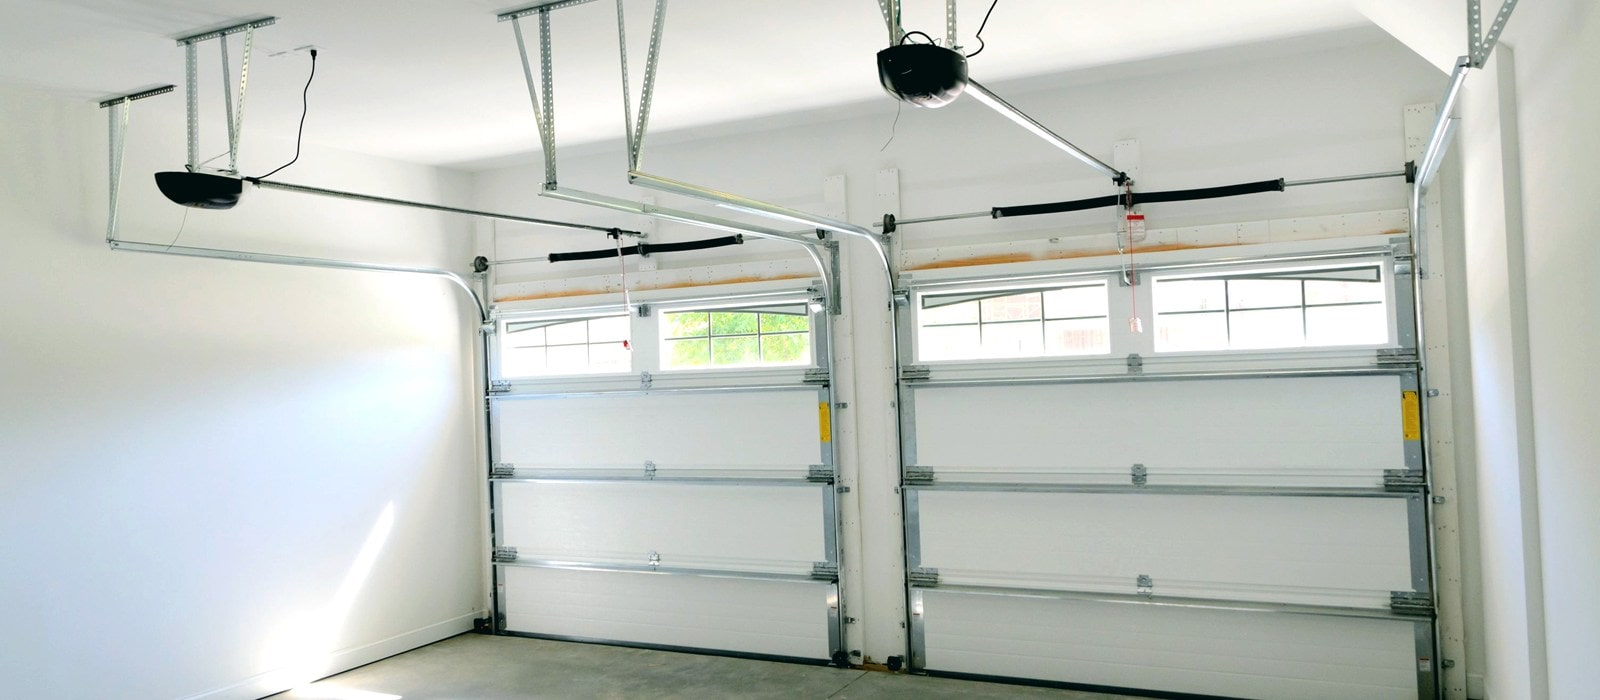 Garage door repair mesa az - Garage Door Repair Service